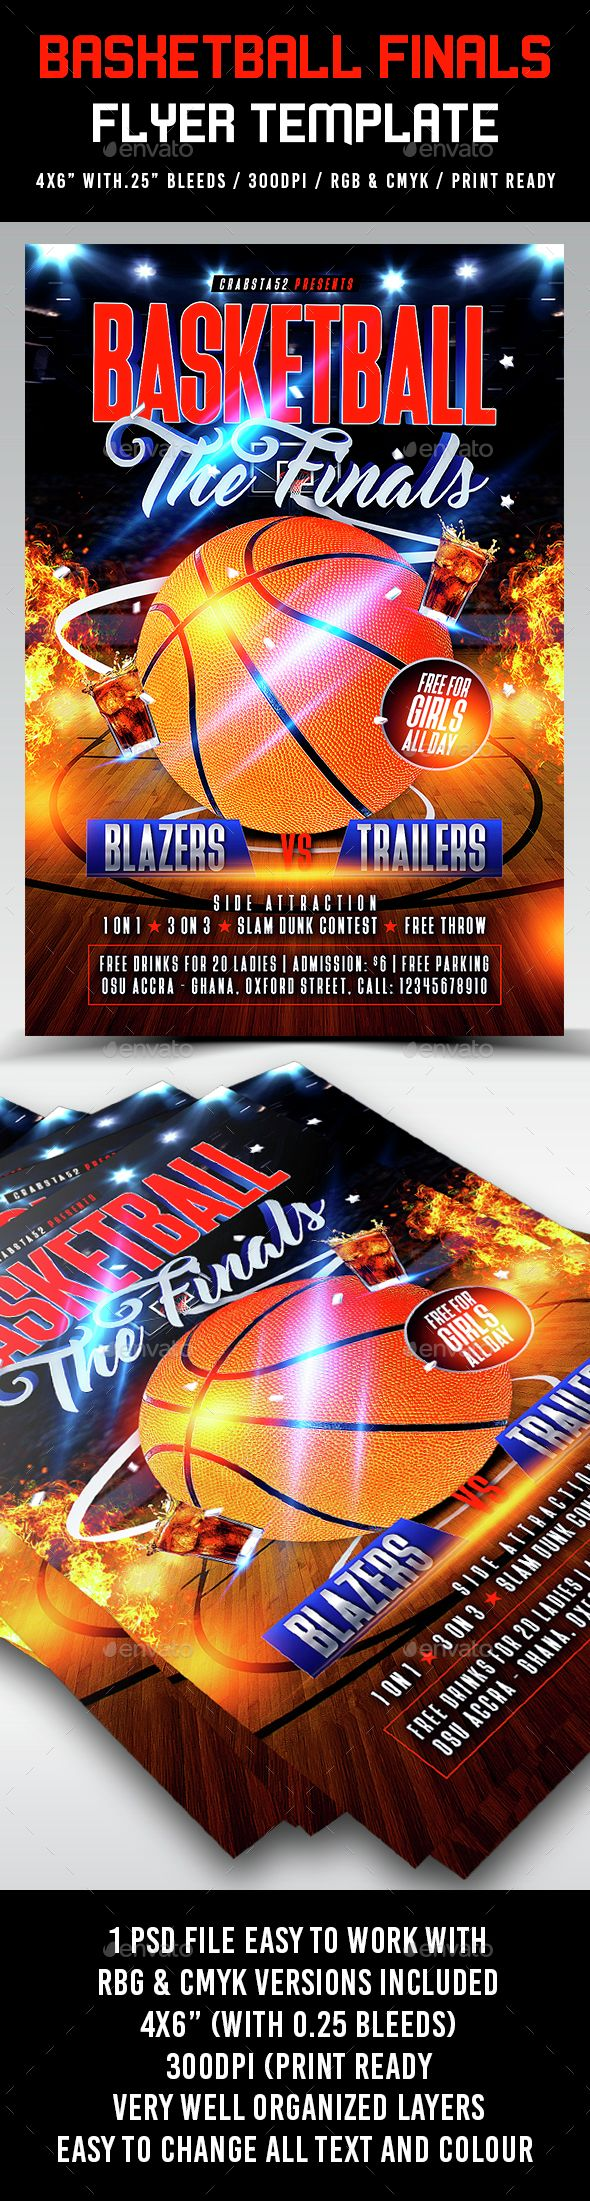 Basketball Finals Flyer Template by Crabsta52 Basketball Finals Flyer Template is very modern psd flyer that will give the perfect promotion for your upcoming event or club par